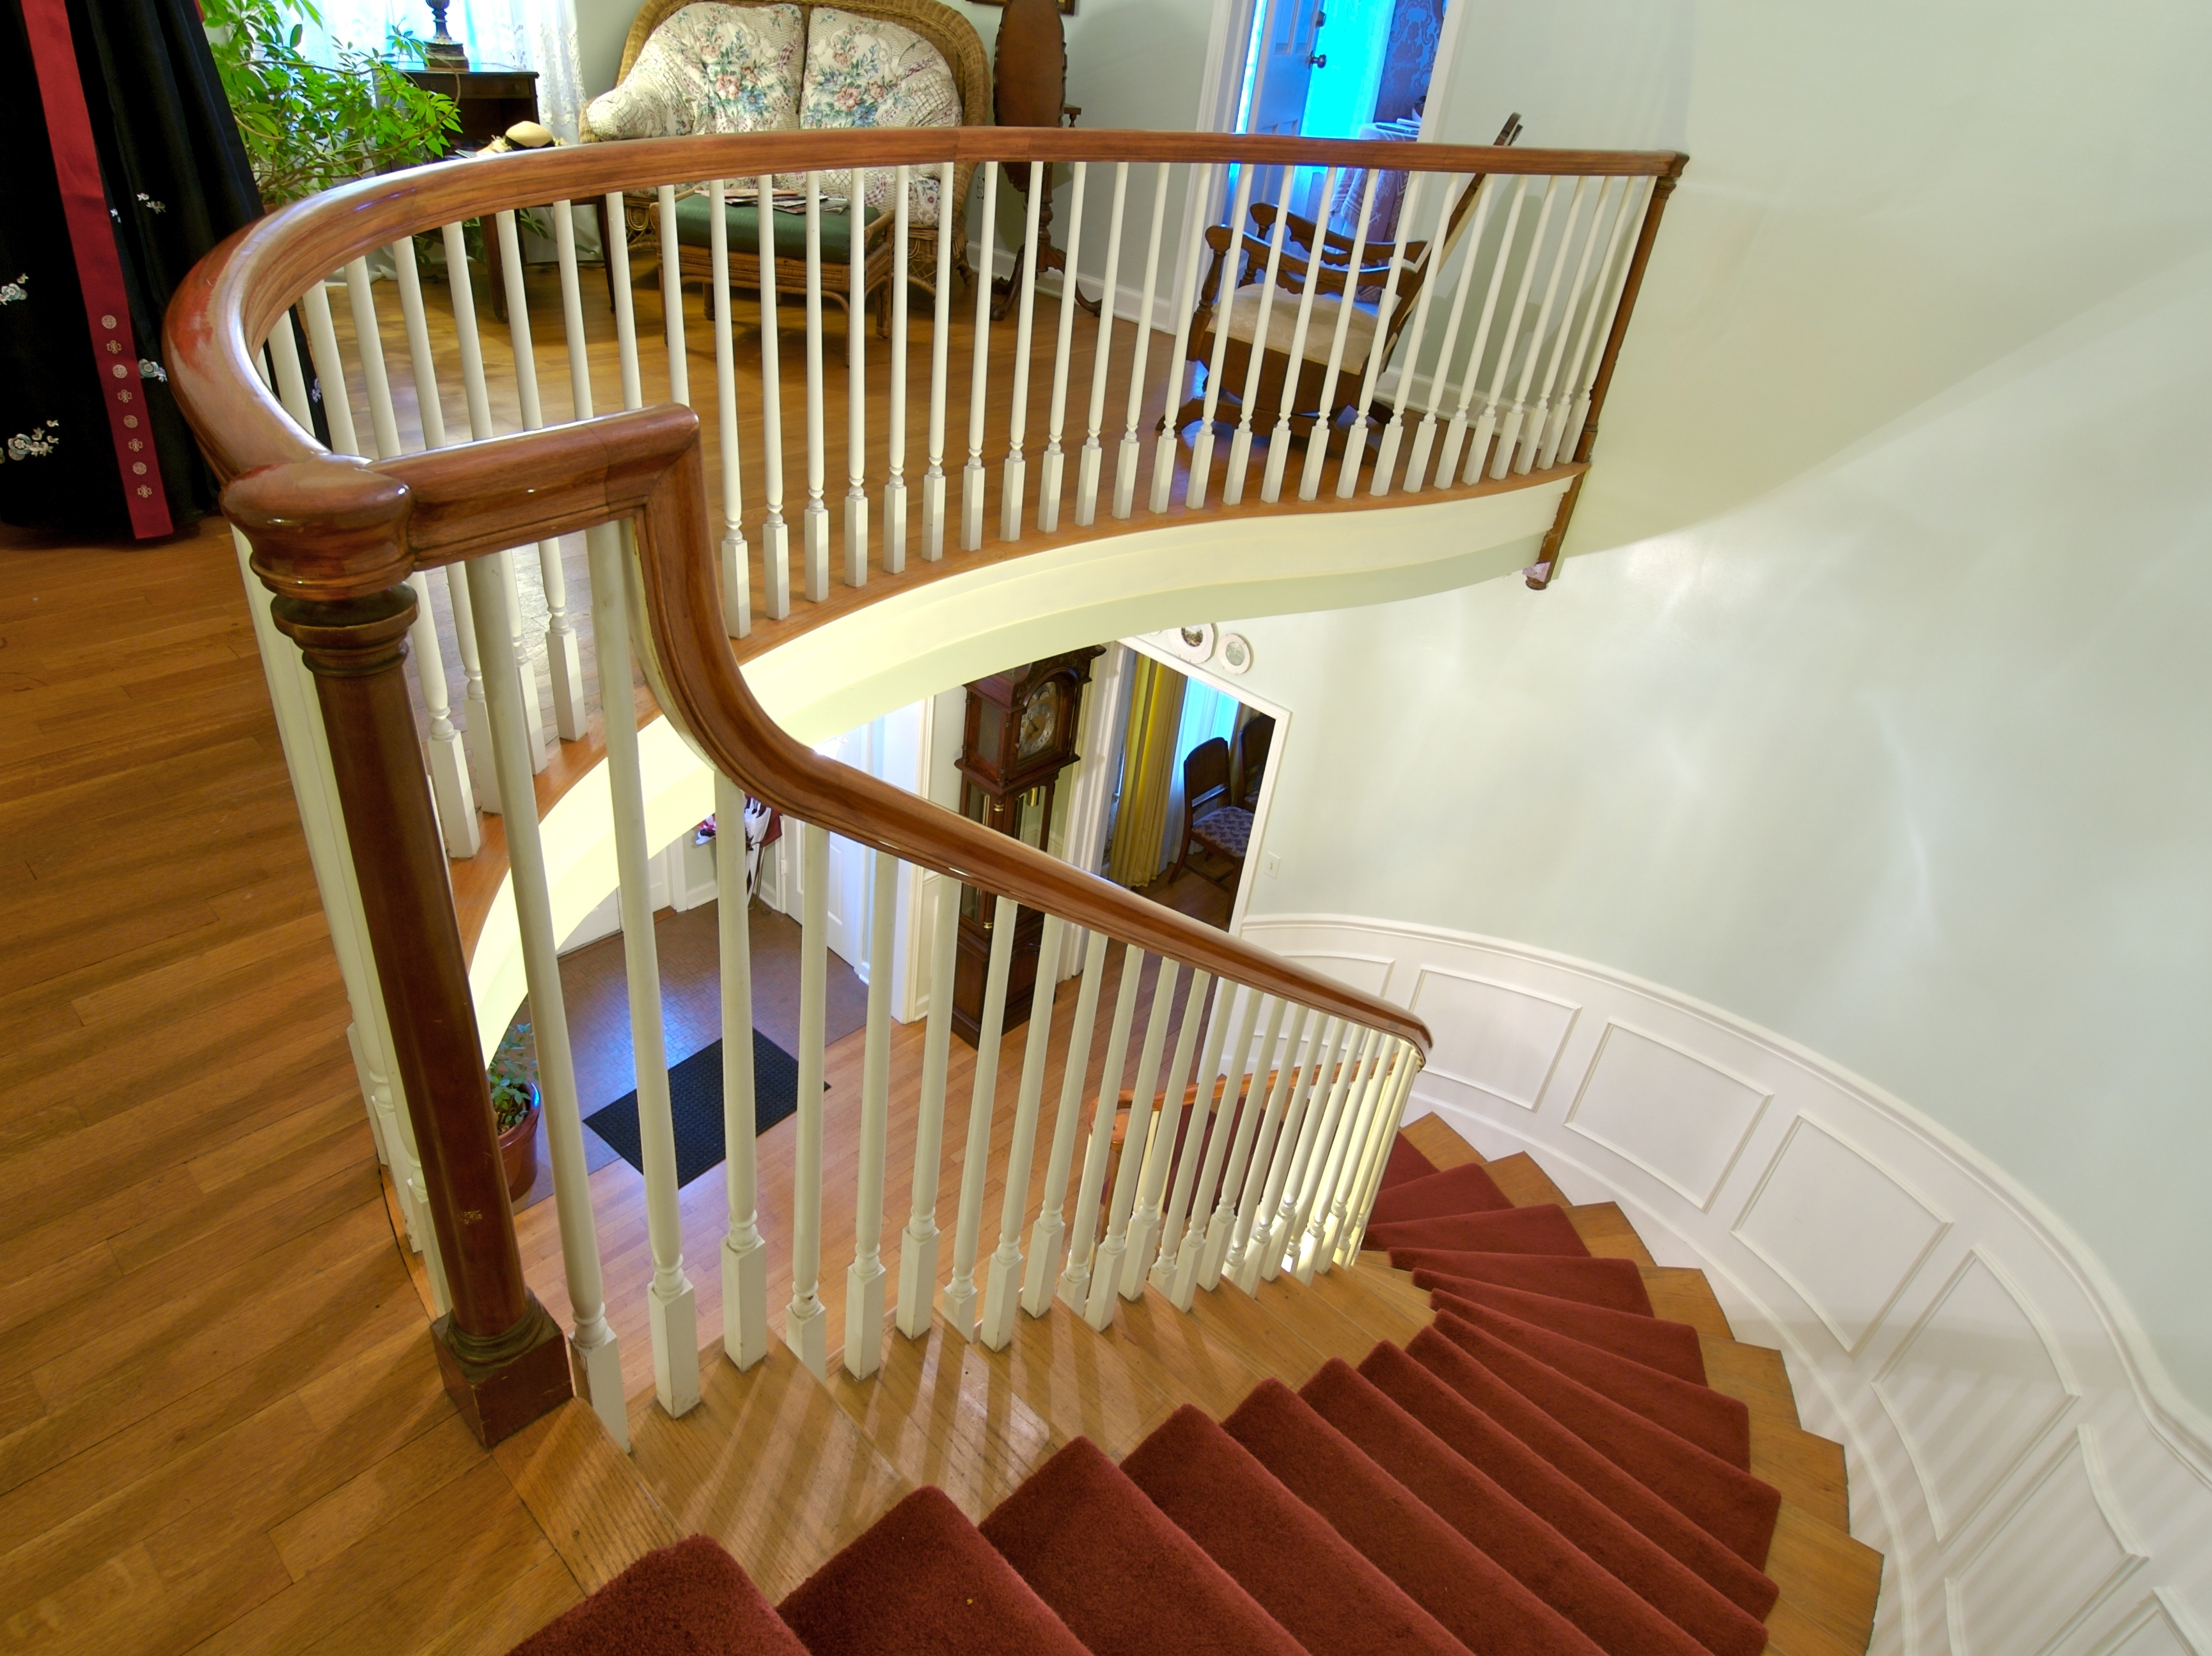 Is A Pad Necessary For A Carpet Runner On Stairs Hunker   Best Carpet Padding For Stairs   Wooden Stairs   Non Slip   Rebond   Stair Tread   Rug